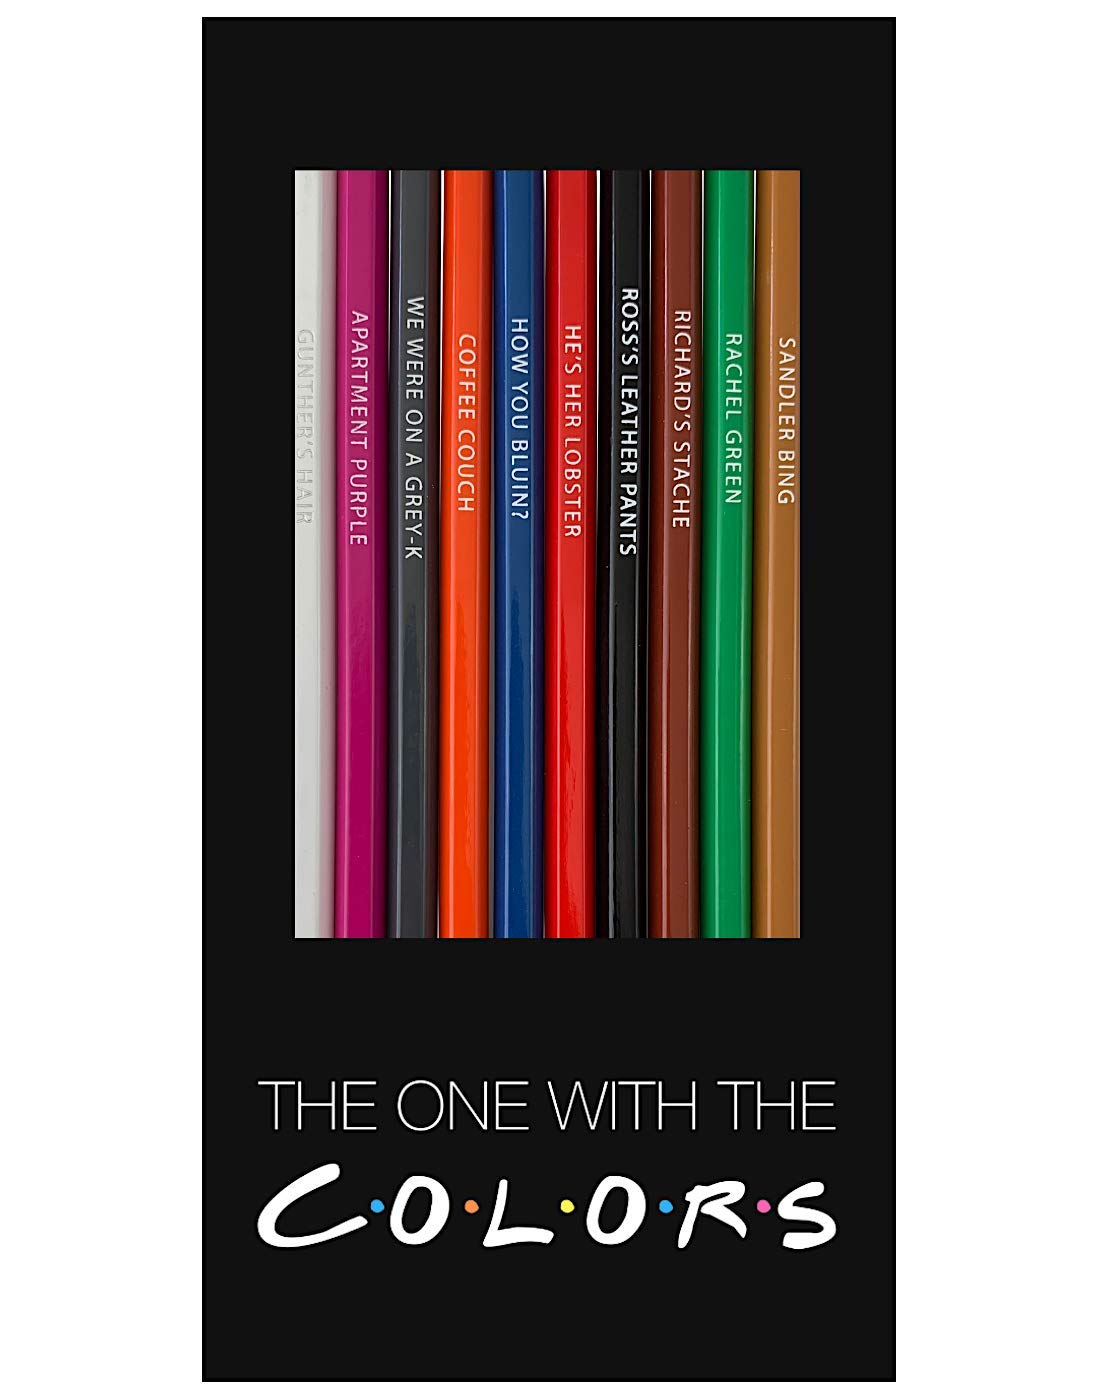 'die ein mit die Colors' Friends Tv zeigen Inspired Parody Colored Pencils